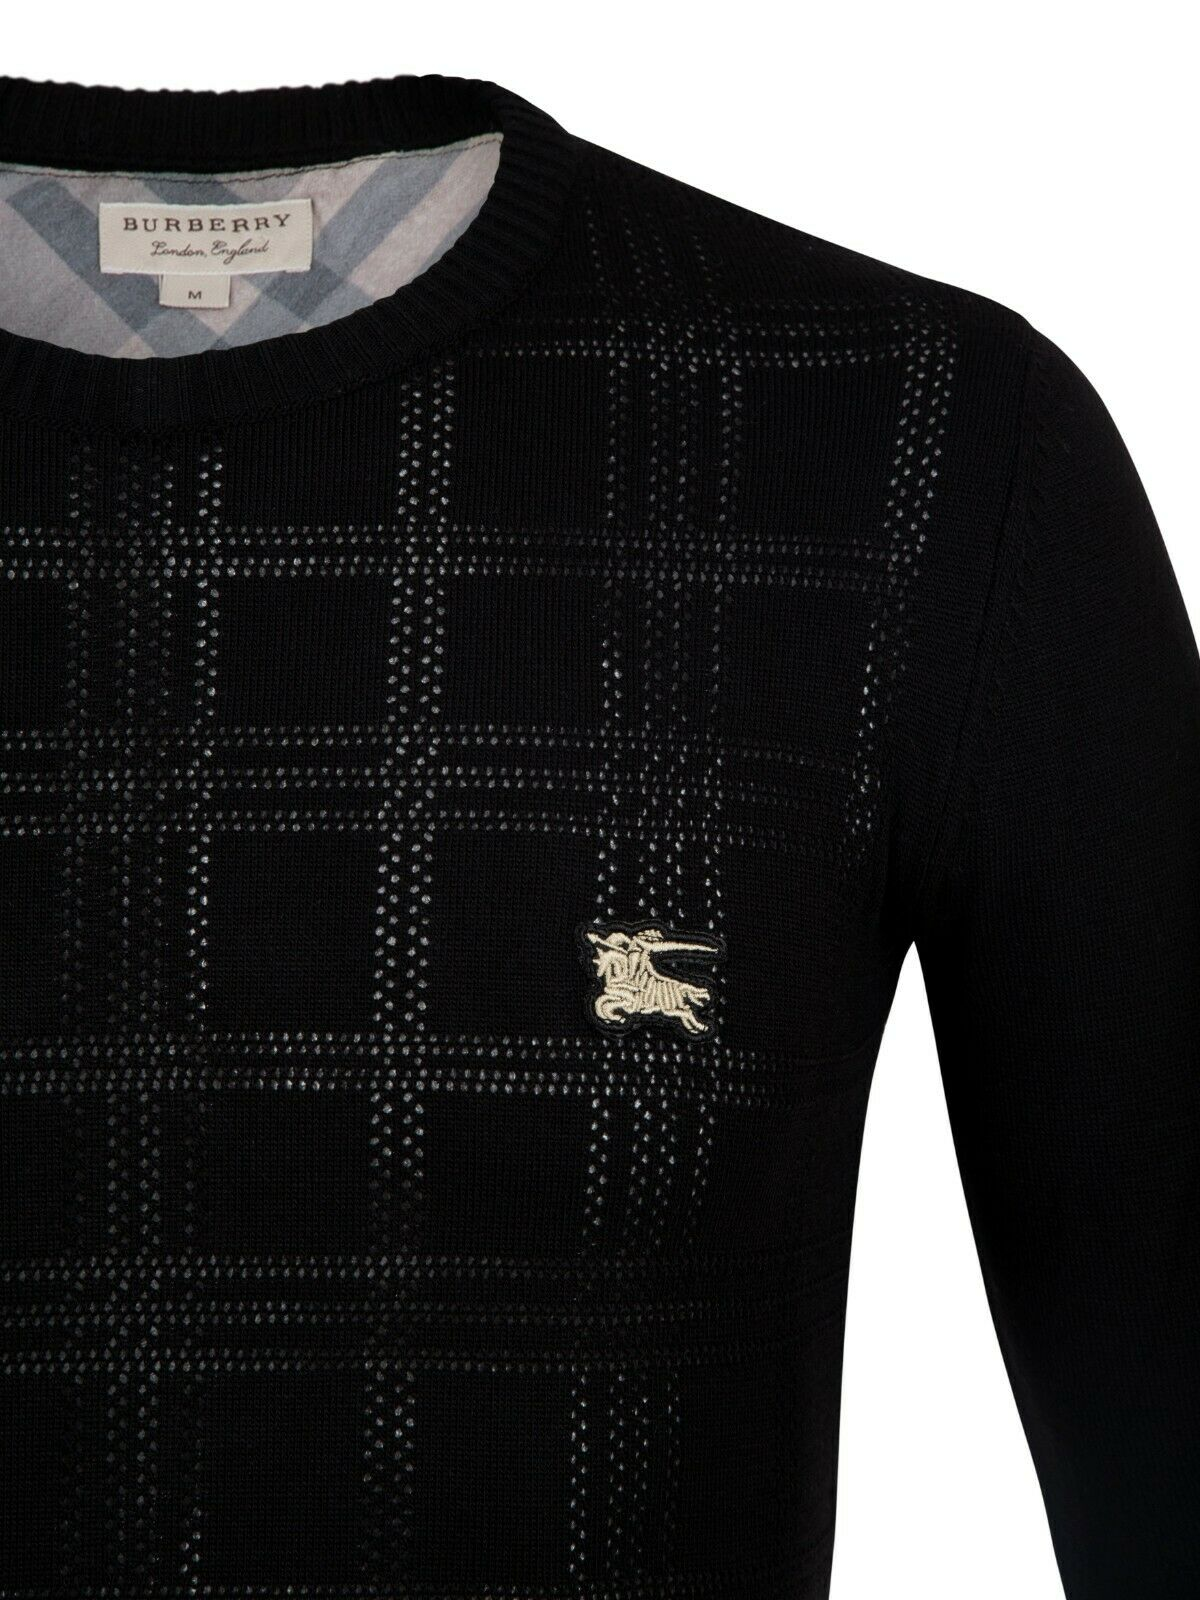 Burberry Black  Jumper Pullover Sweater Slim Fit Size !